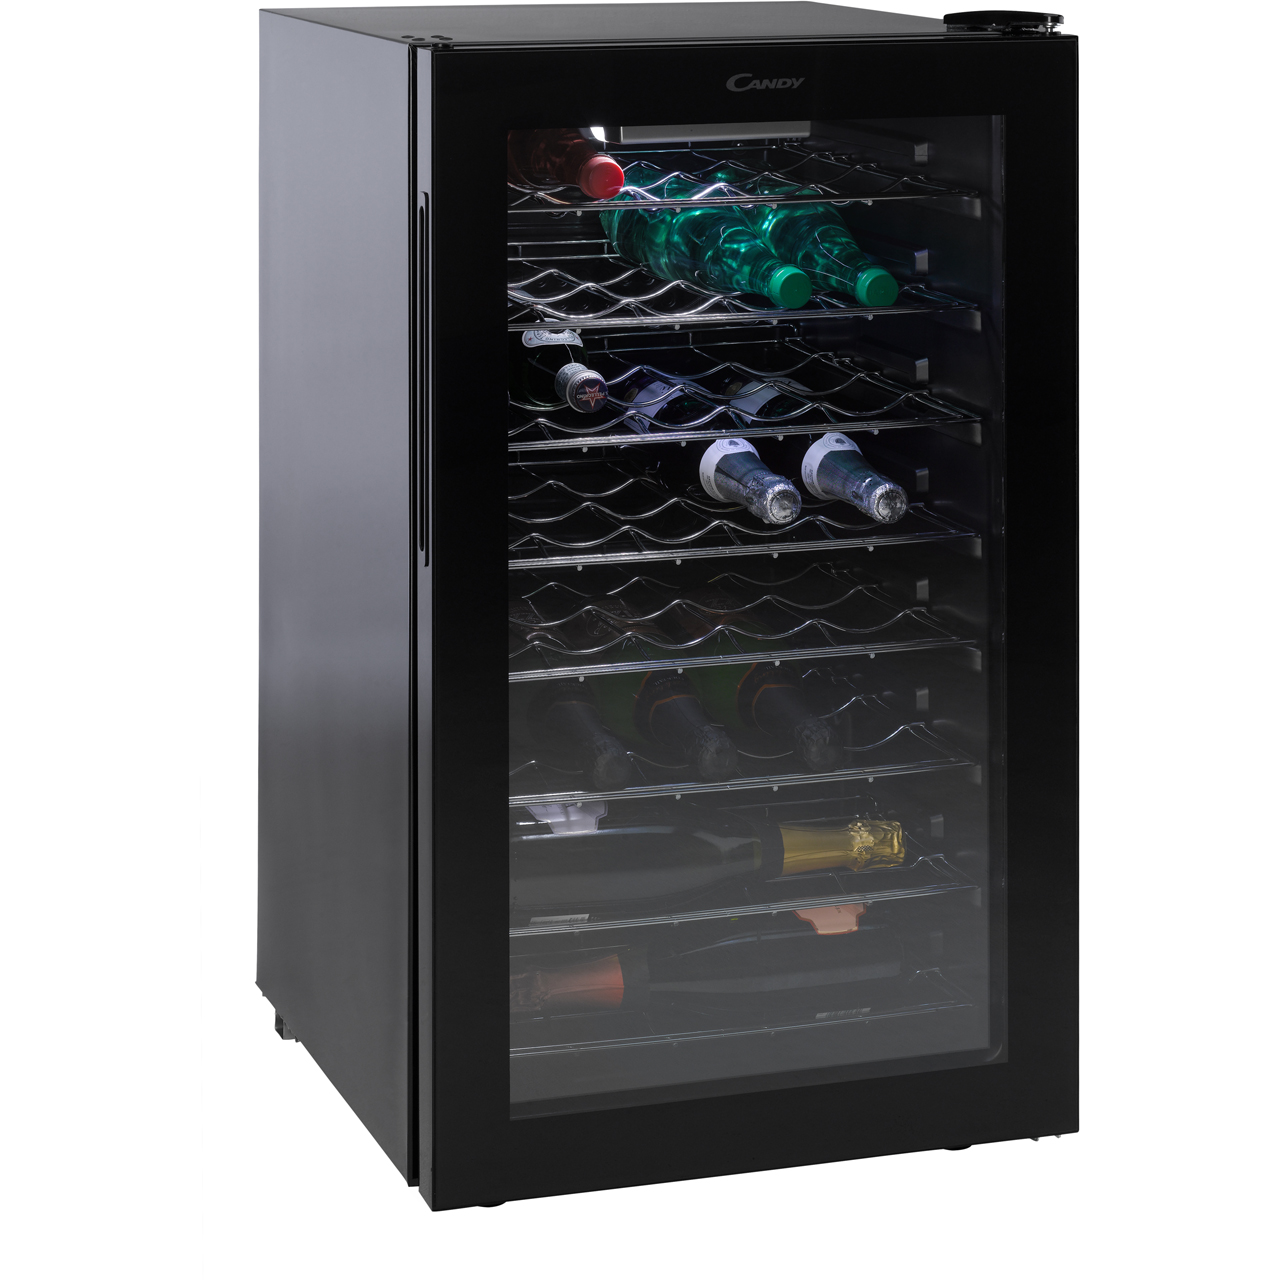 Candy Cwc150uk Wine Cooler Black